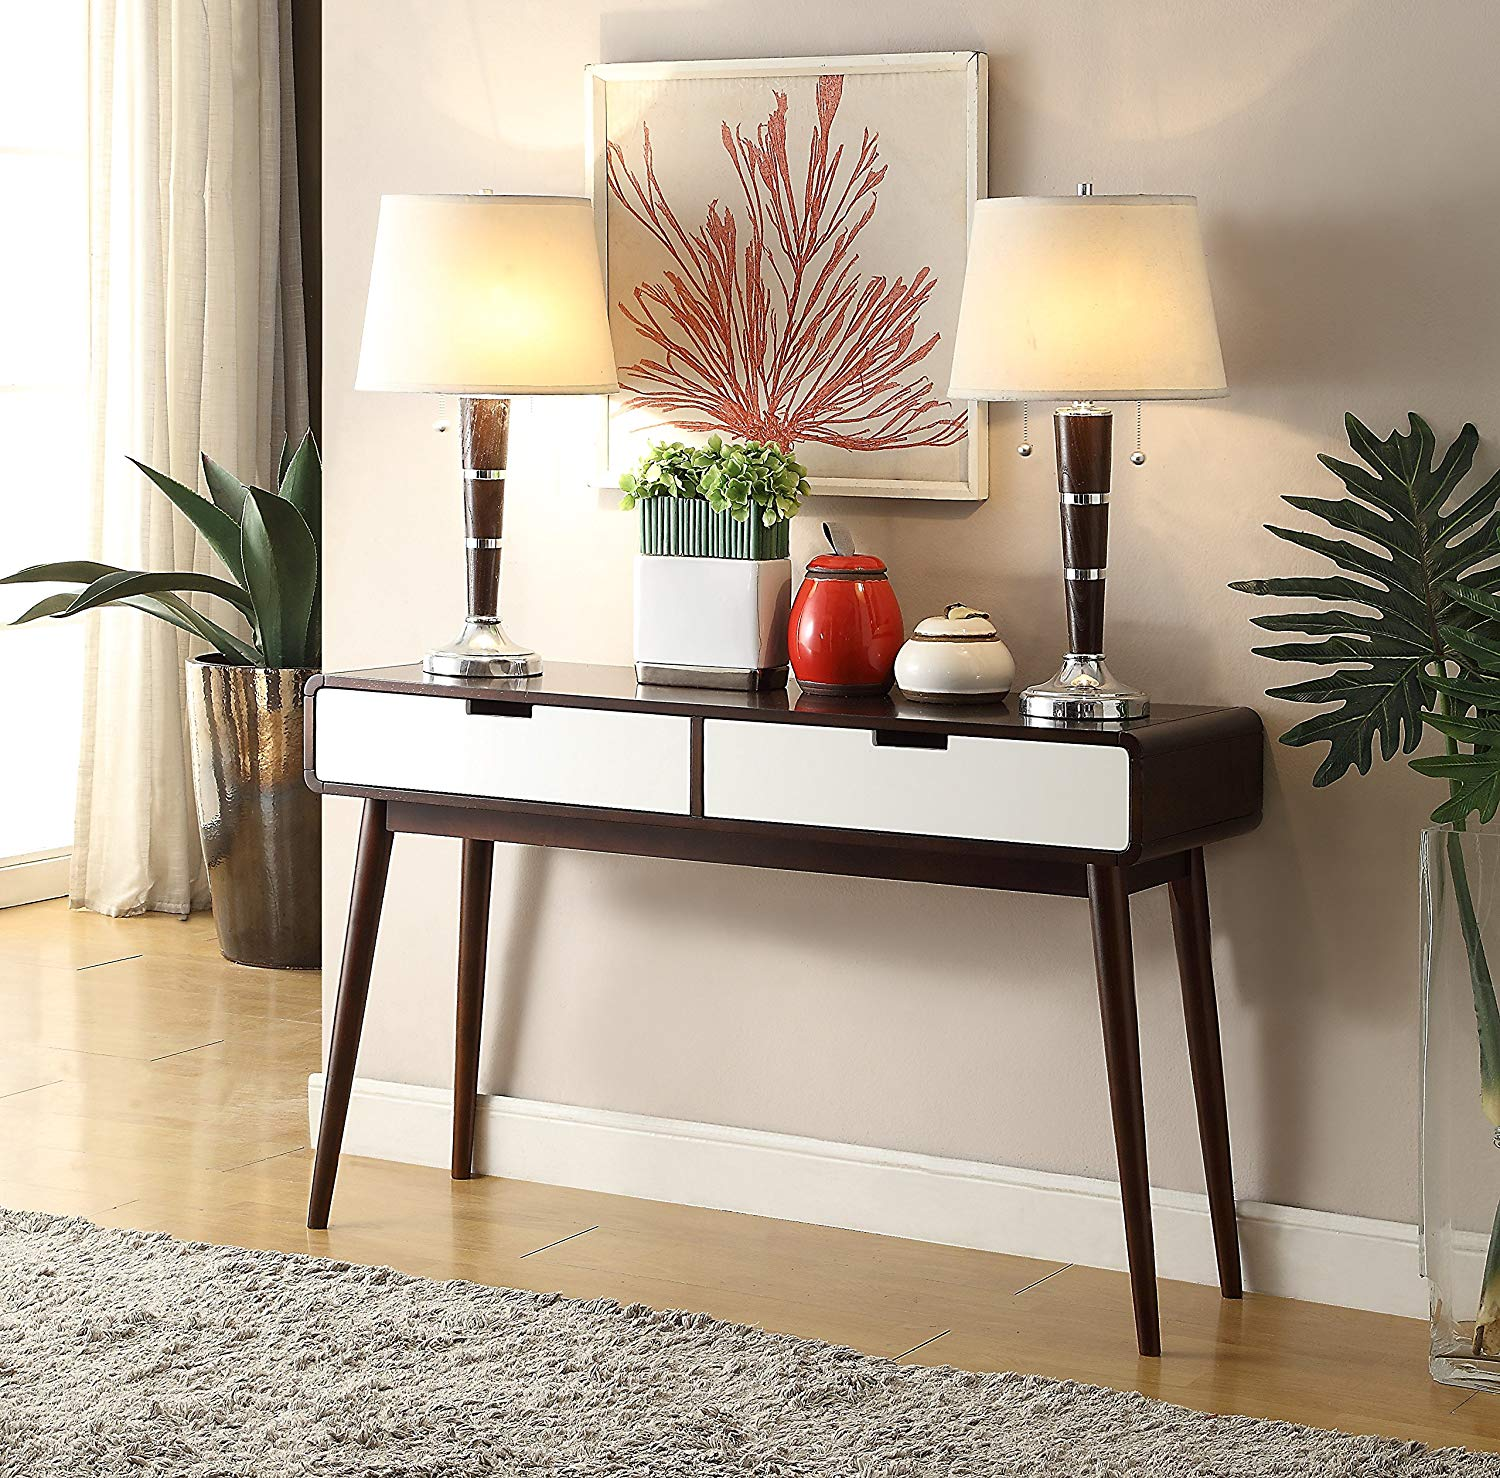 mid-century-modern-console-table-with-drawers